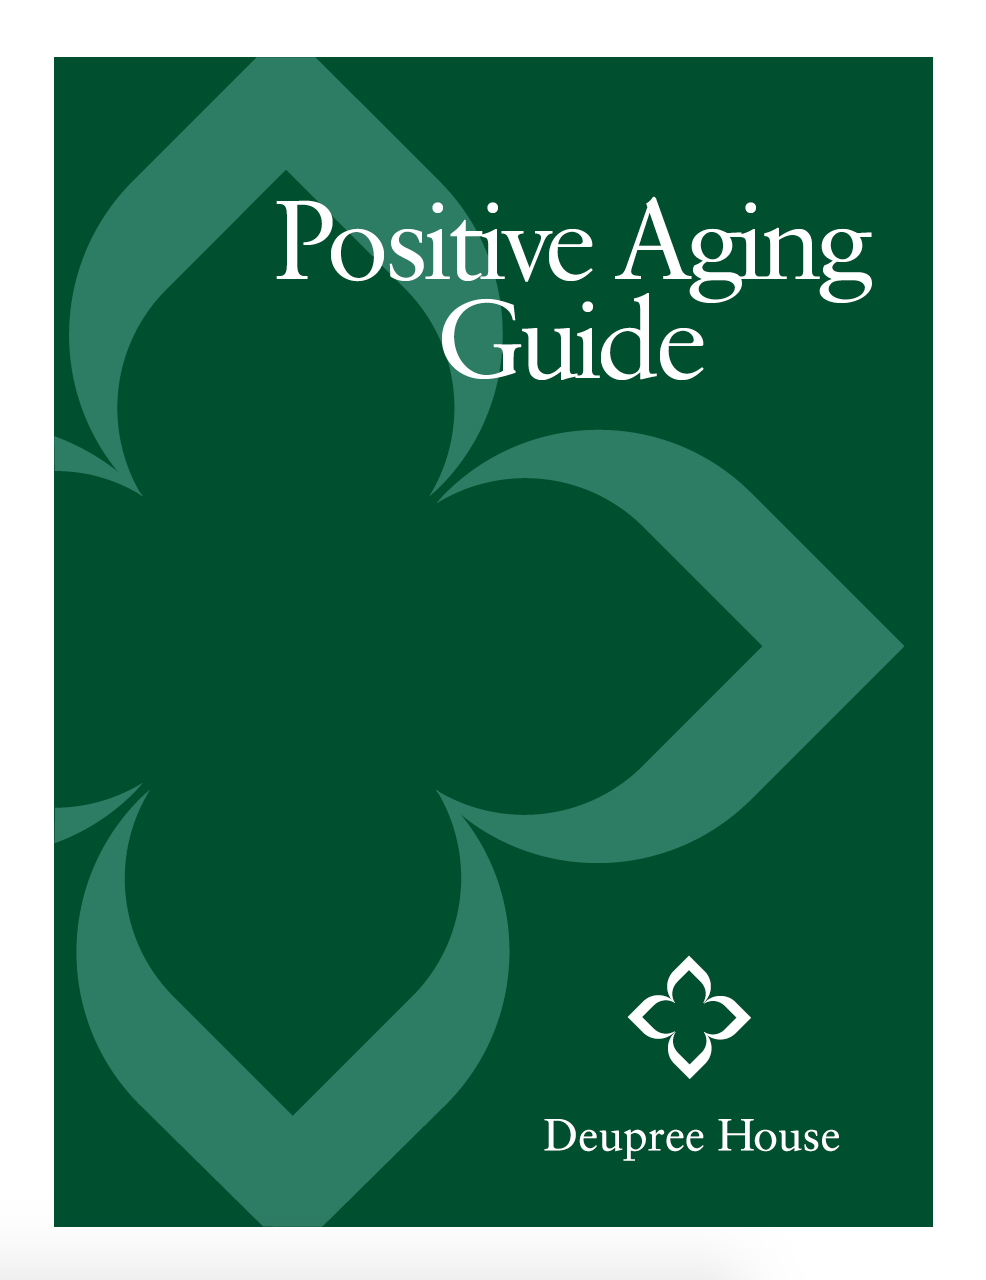 Deupree House - Positive Aging Guide